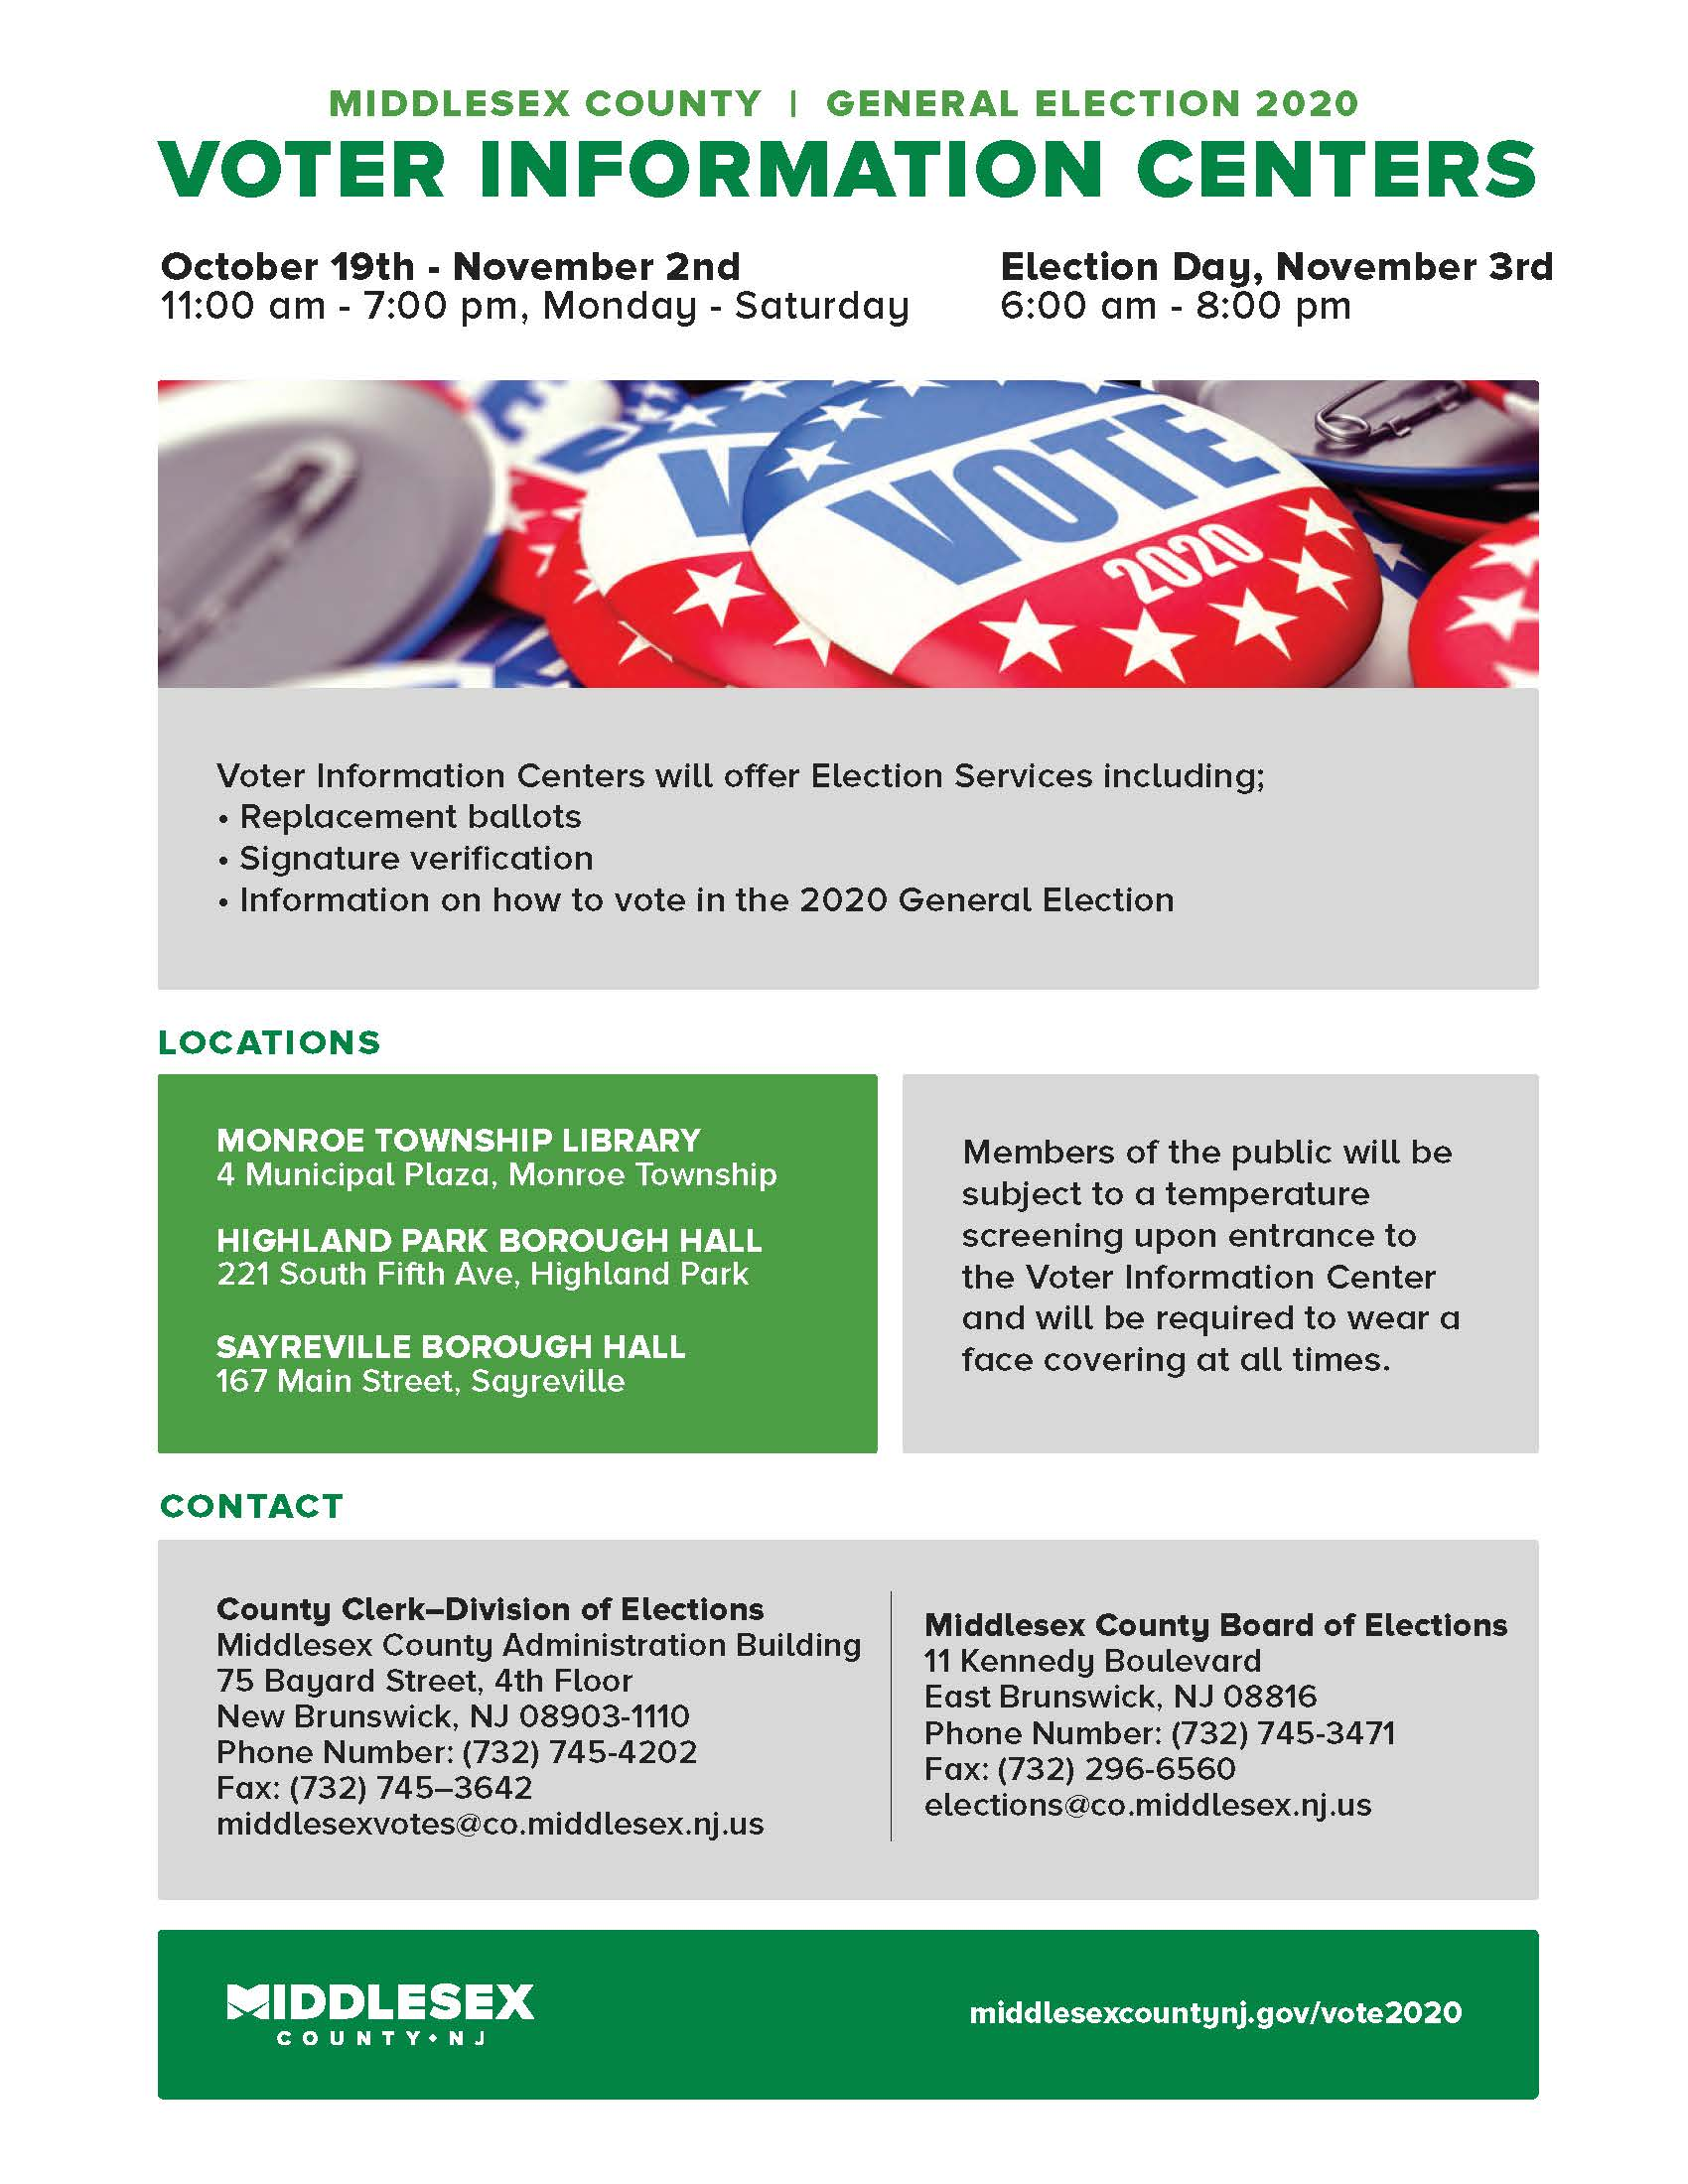 Flyer Regarding Voter Information Centers